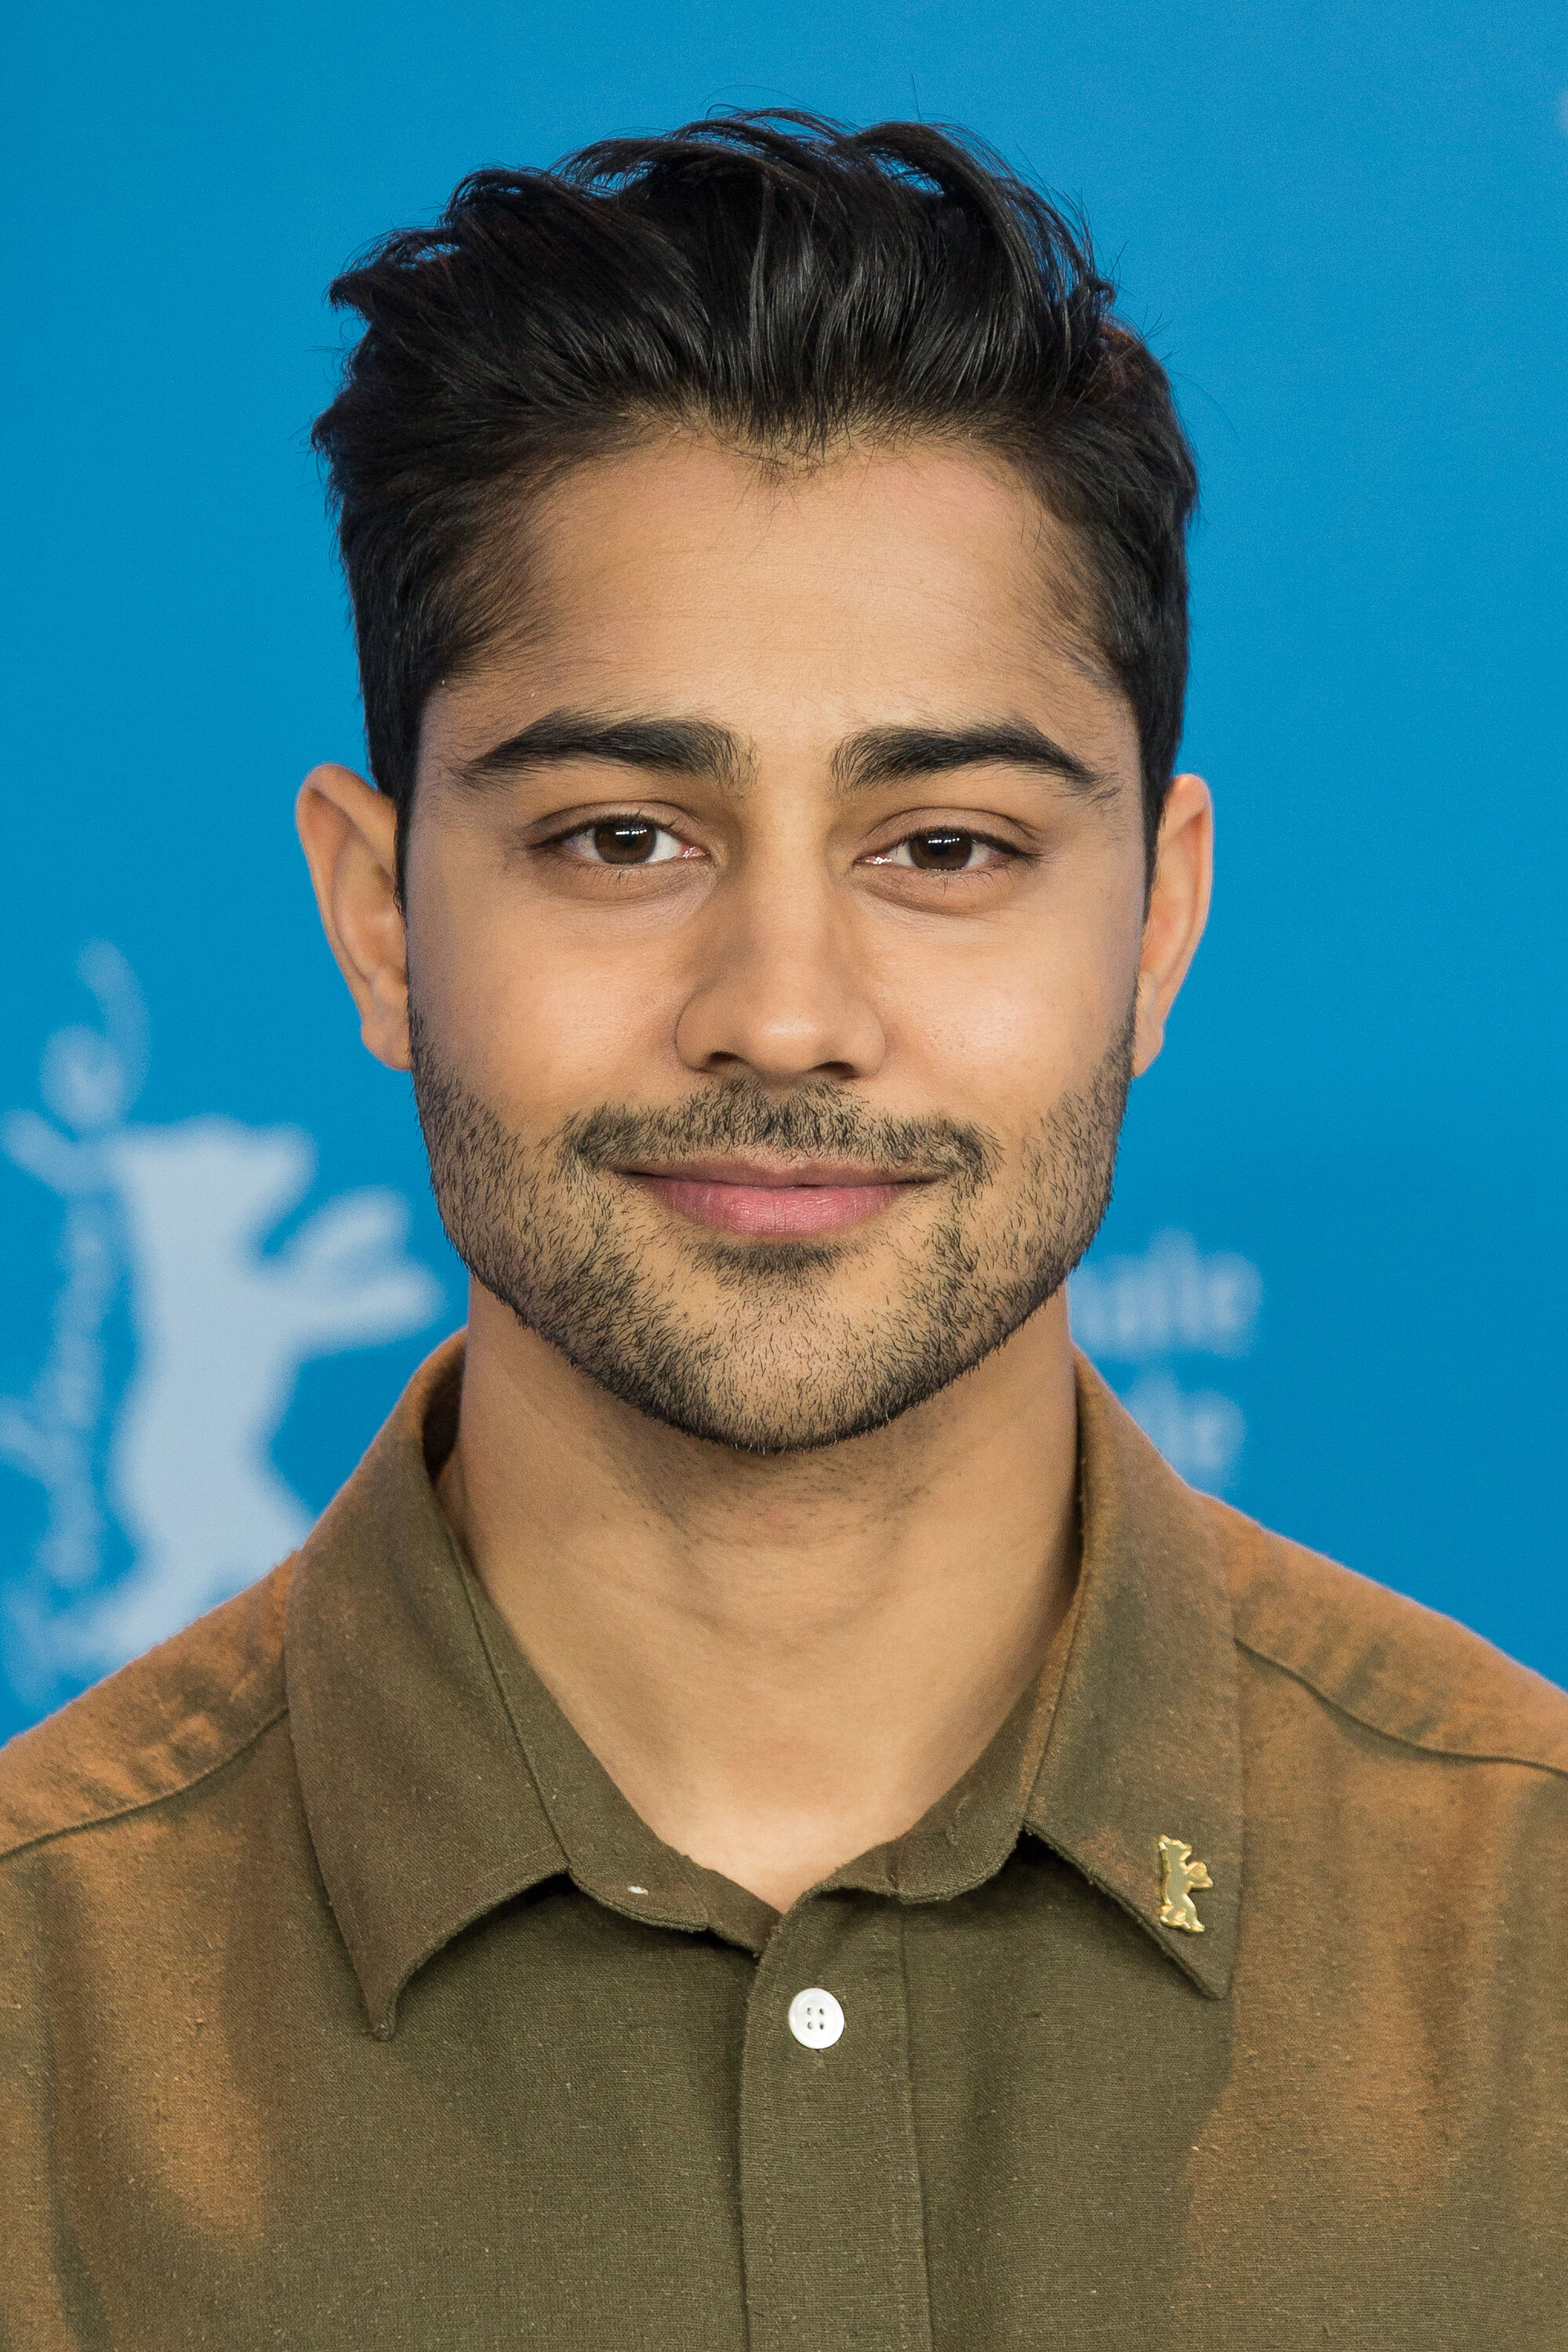 manish dayal resident tv wiki berlinale file wikipedia series viceroy taddlr wikia facts birth son revision south global body history